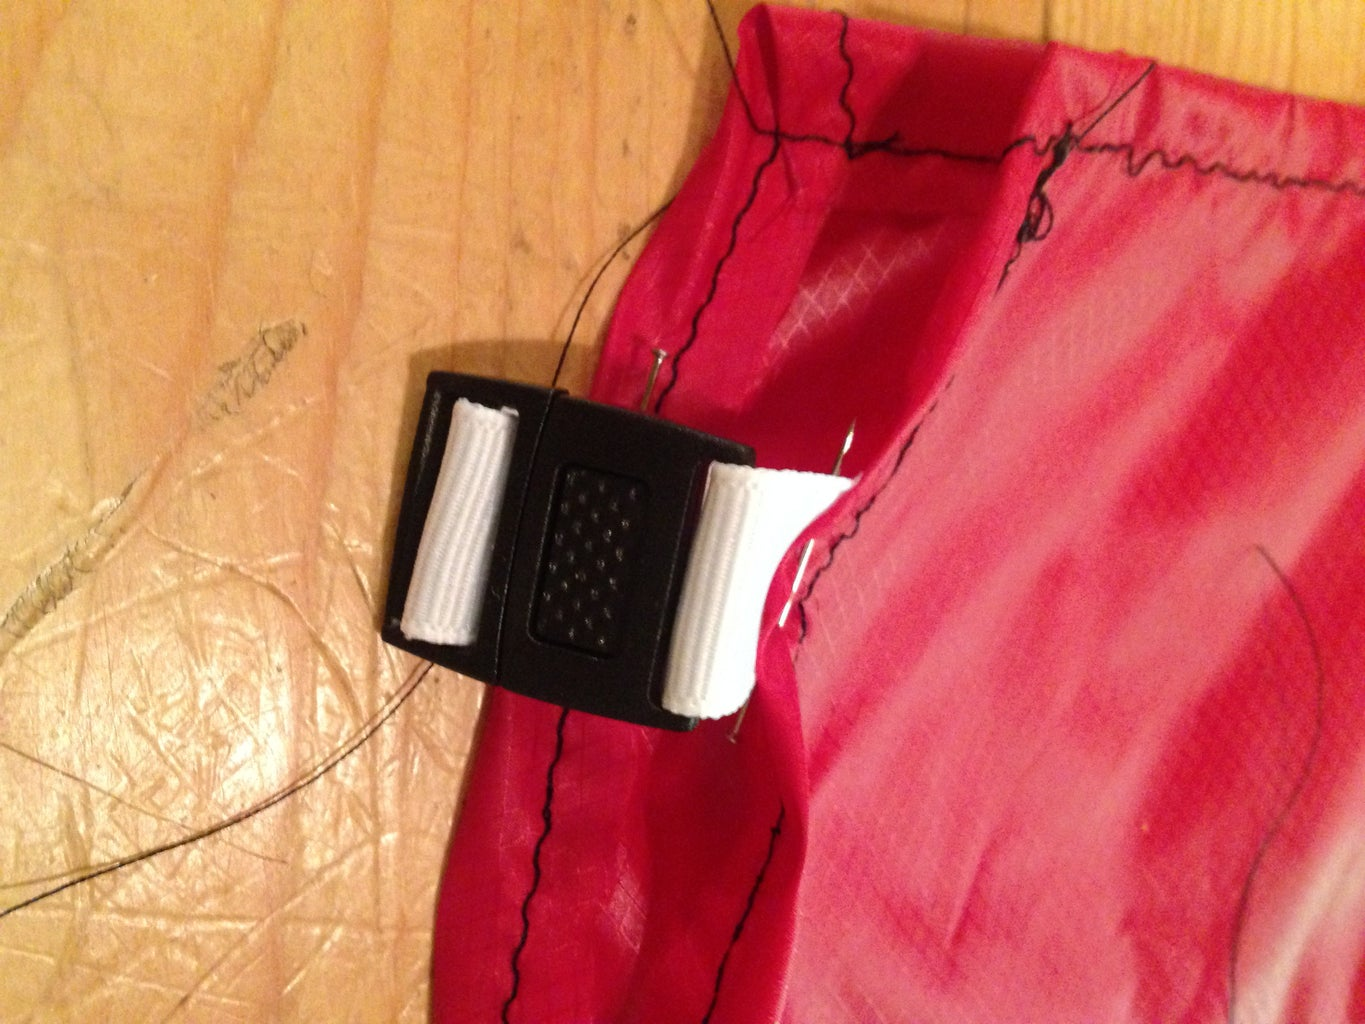 Step 4: Add the Center Release Buckles to the Top of the Quilt